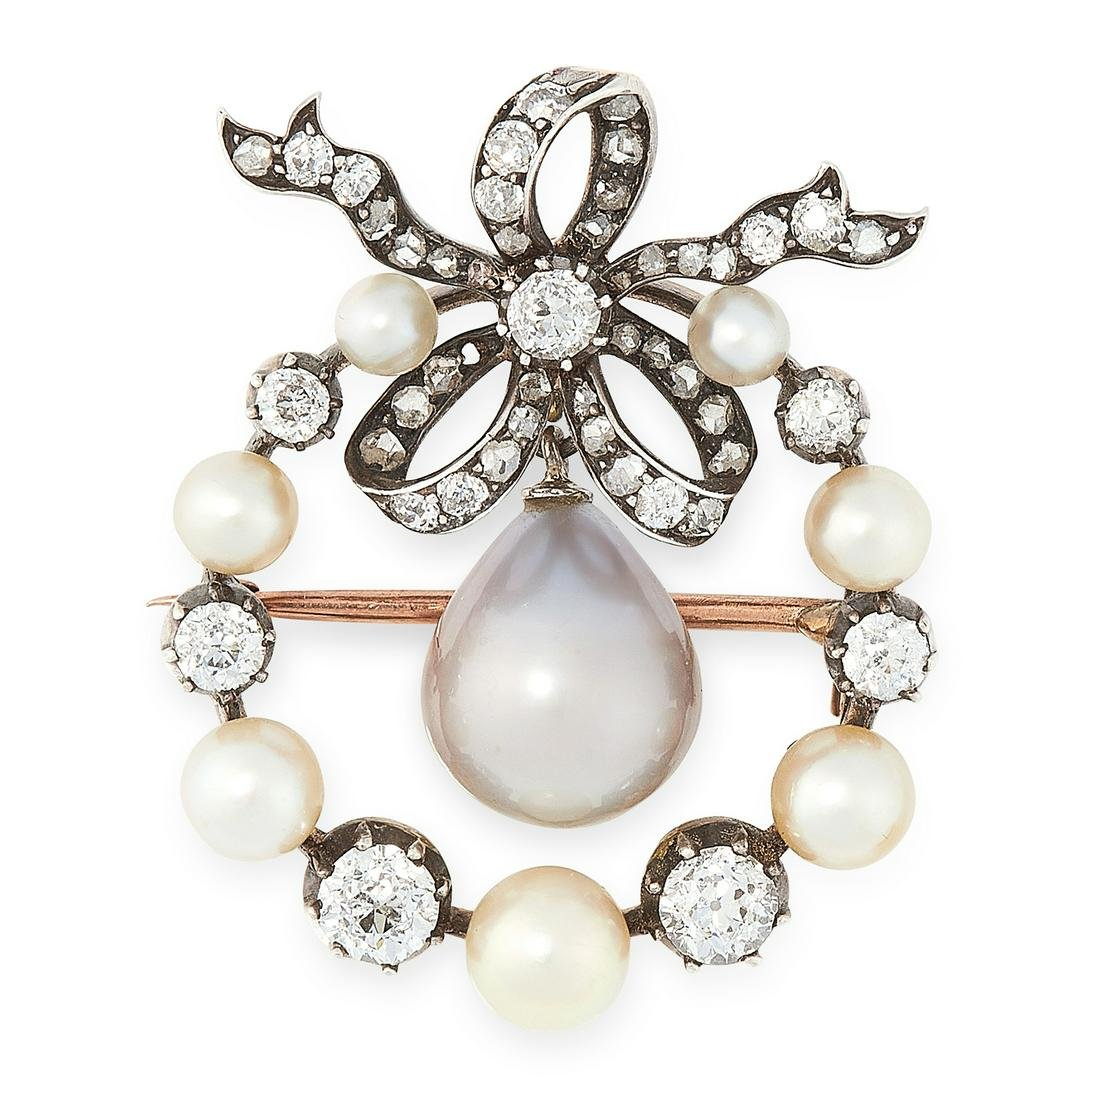 AN ANTIQUE NATURAL PEARL AND DIAMOND BROOCH / PENDANT